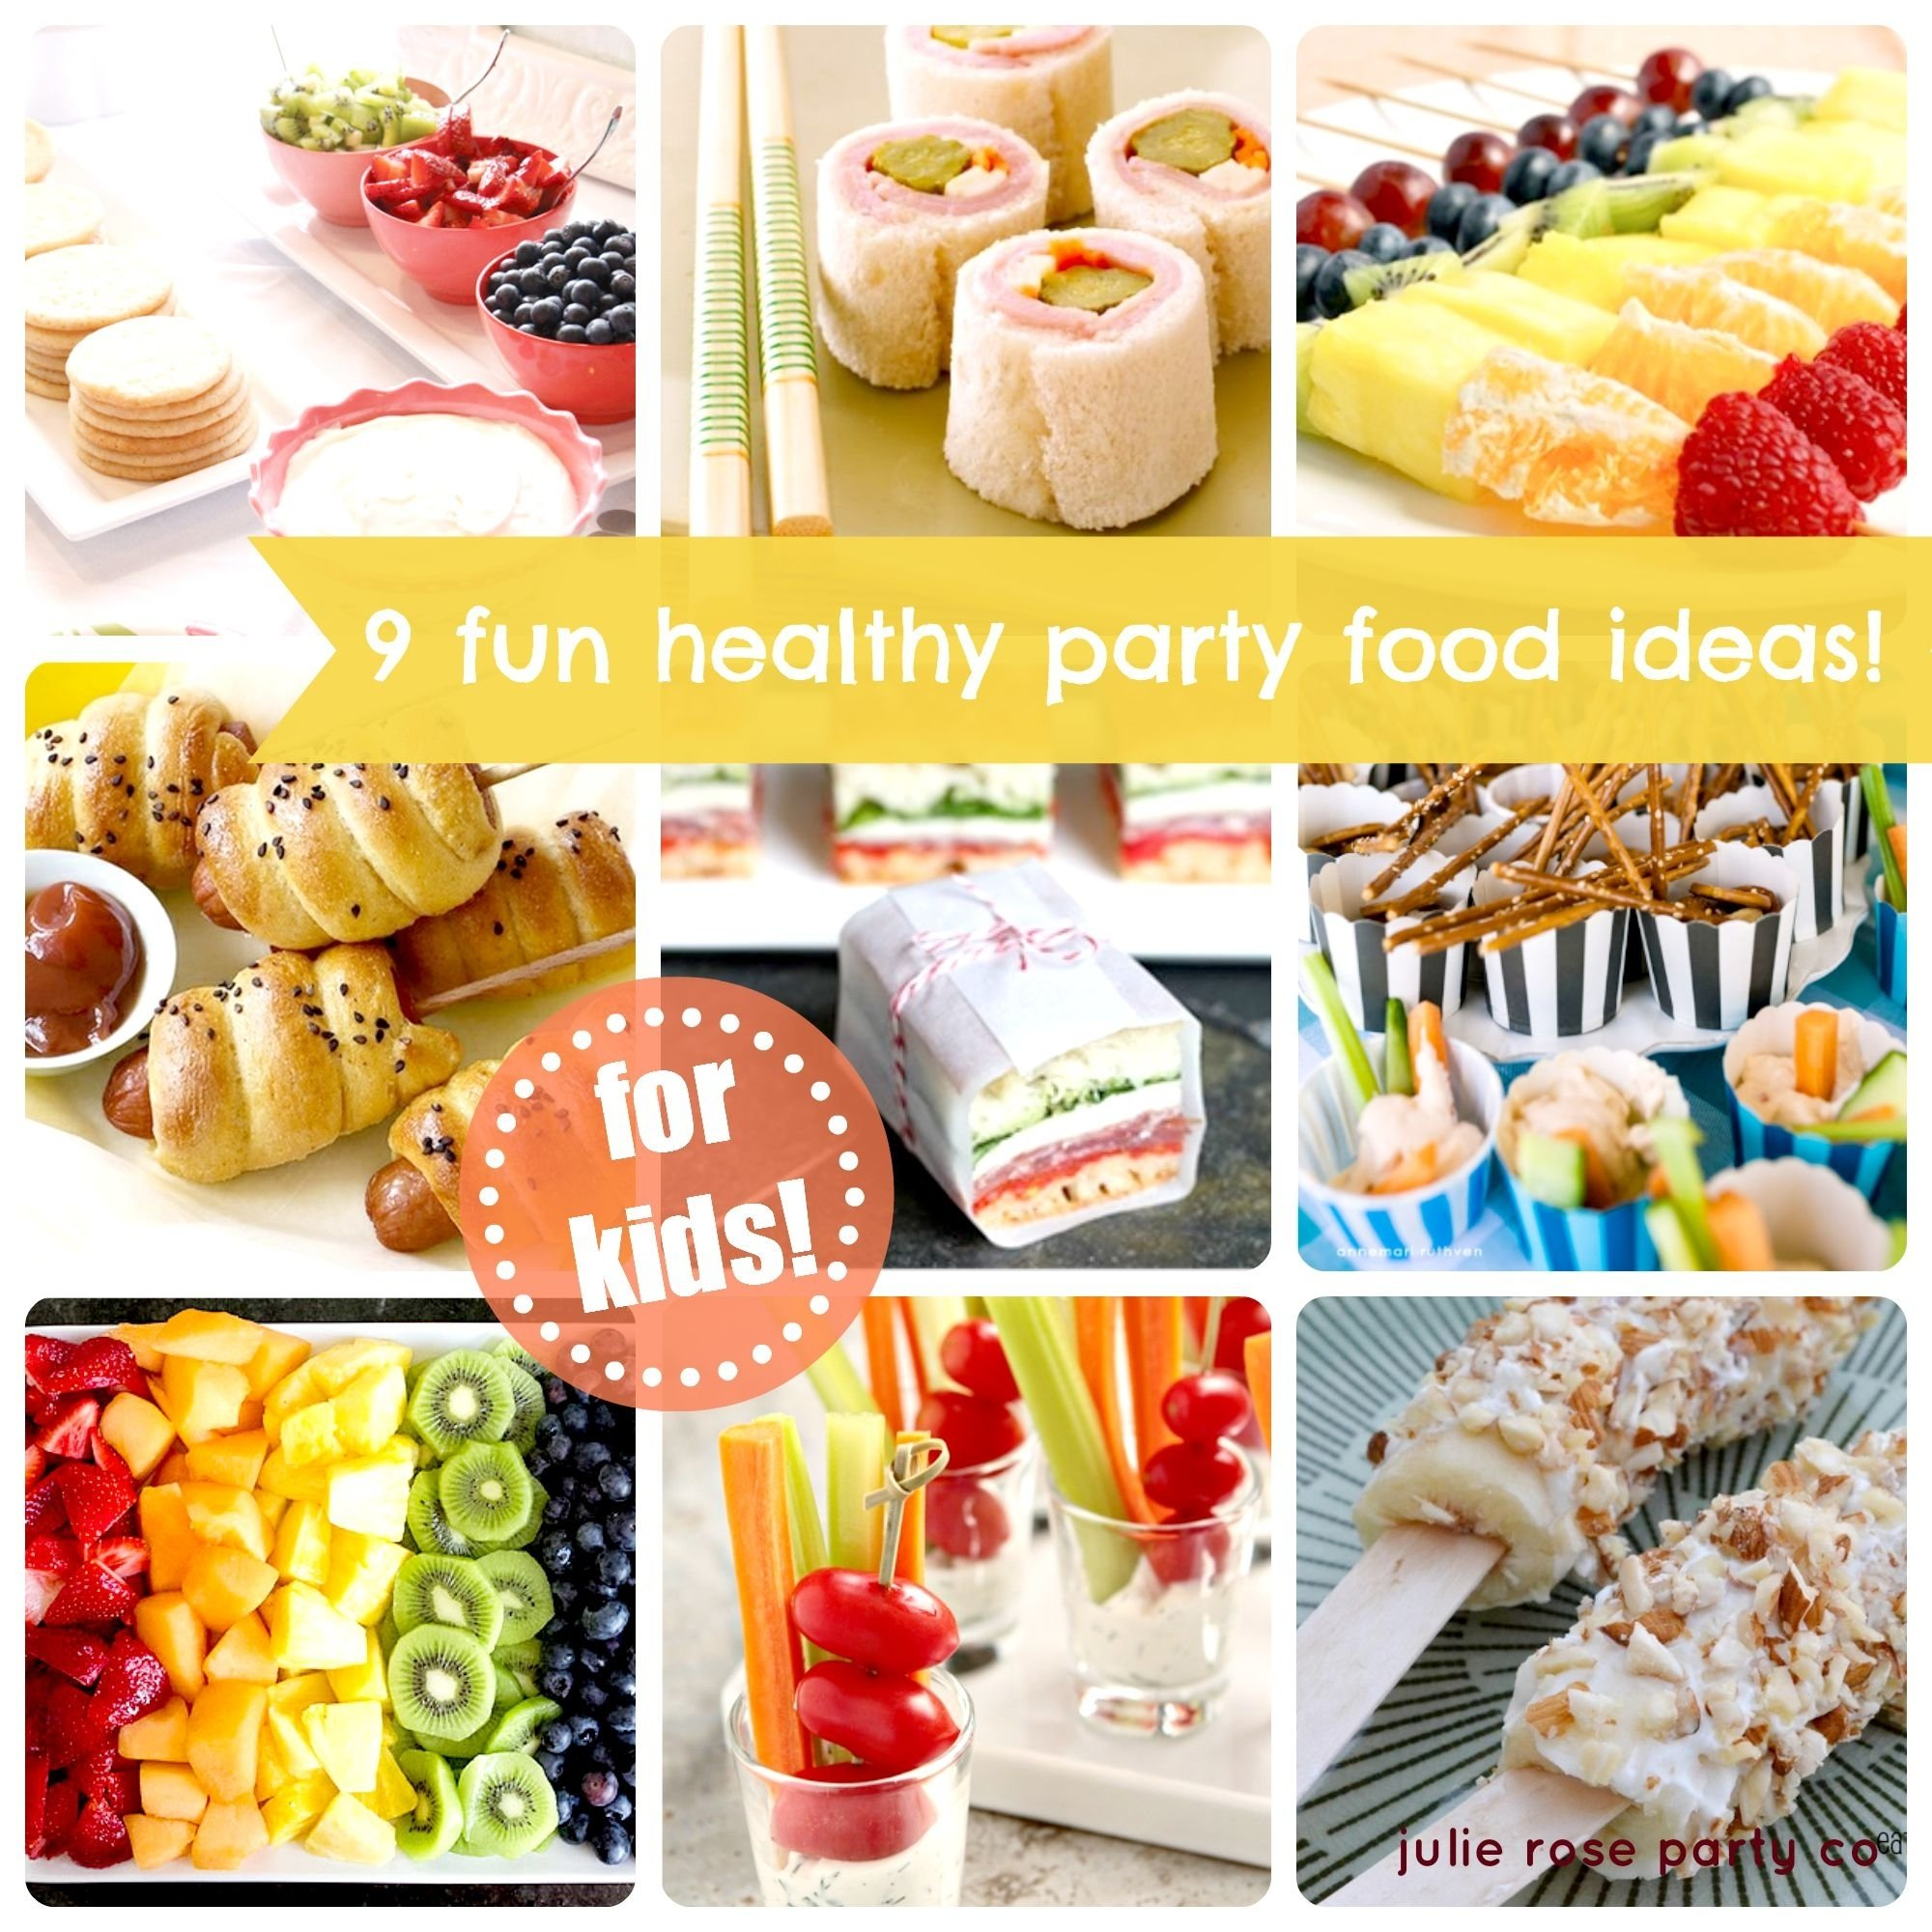 10 Beautiful Party Food Ideas For Kids 9 fun and healthy party food ideas kids rainbow fruit platters 2020